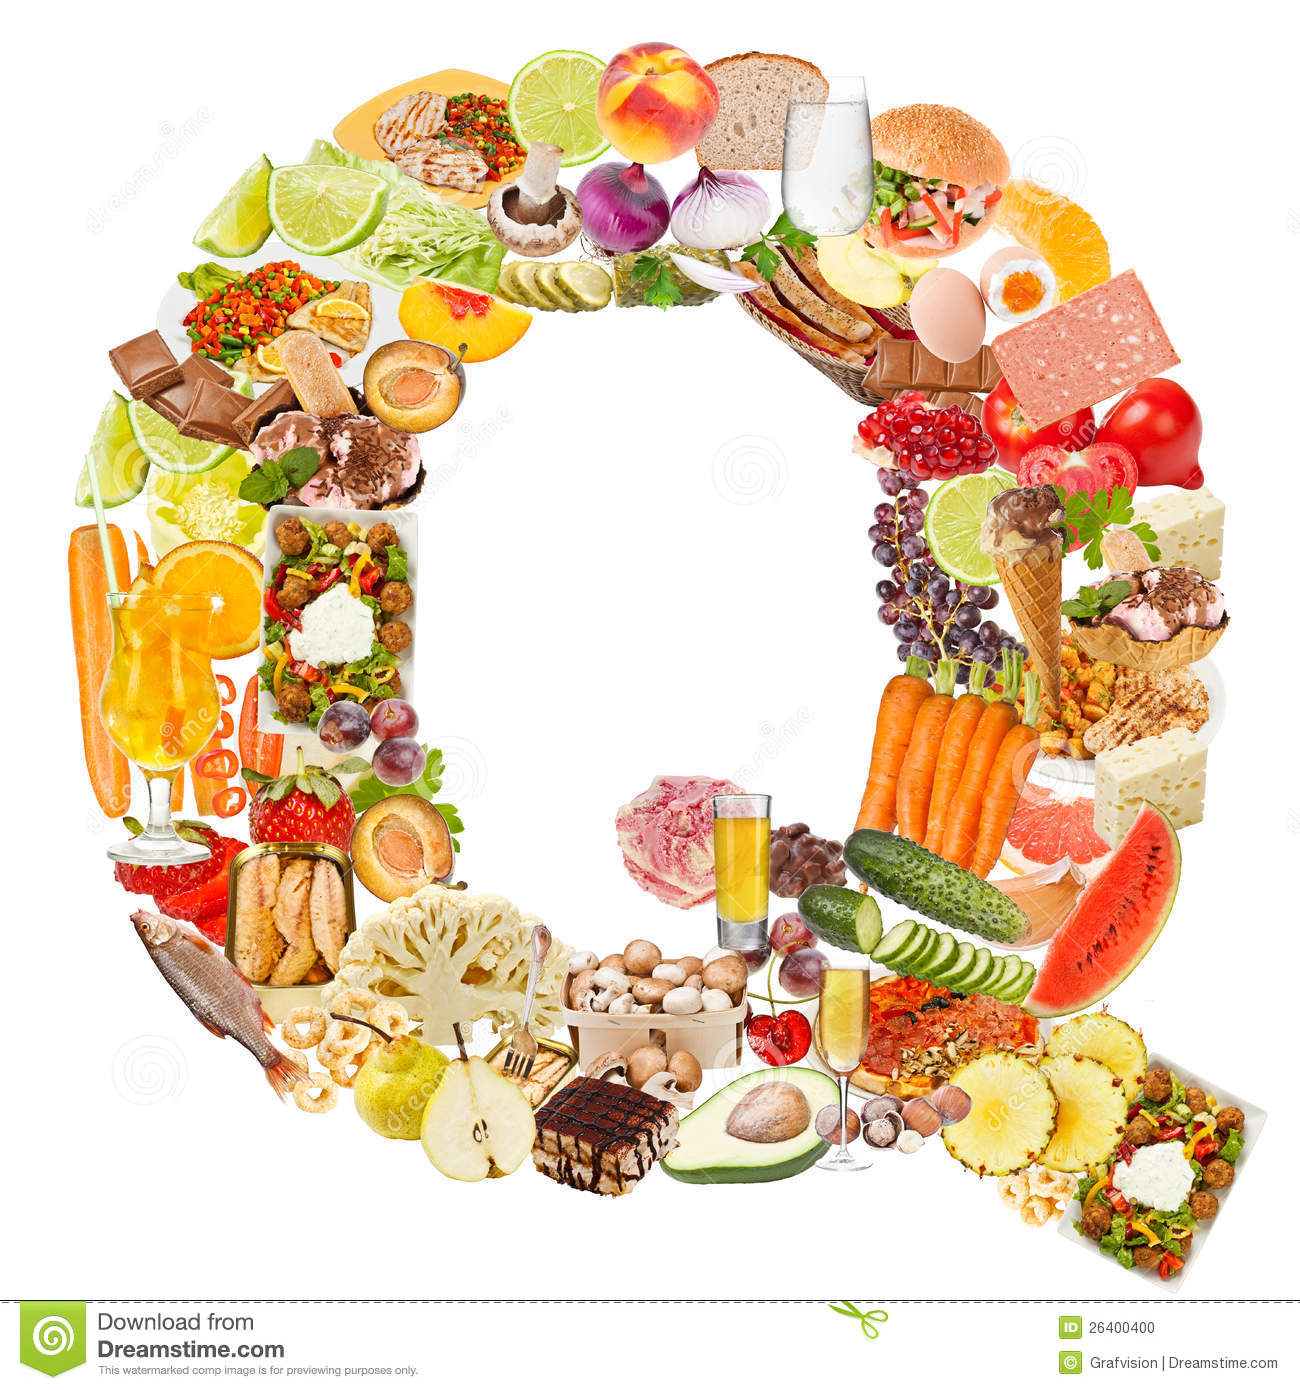 Letter Q made of food stock photo. Image of collage, arial   26400400